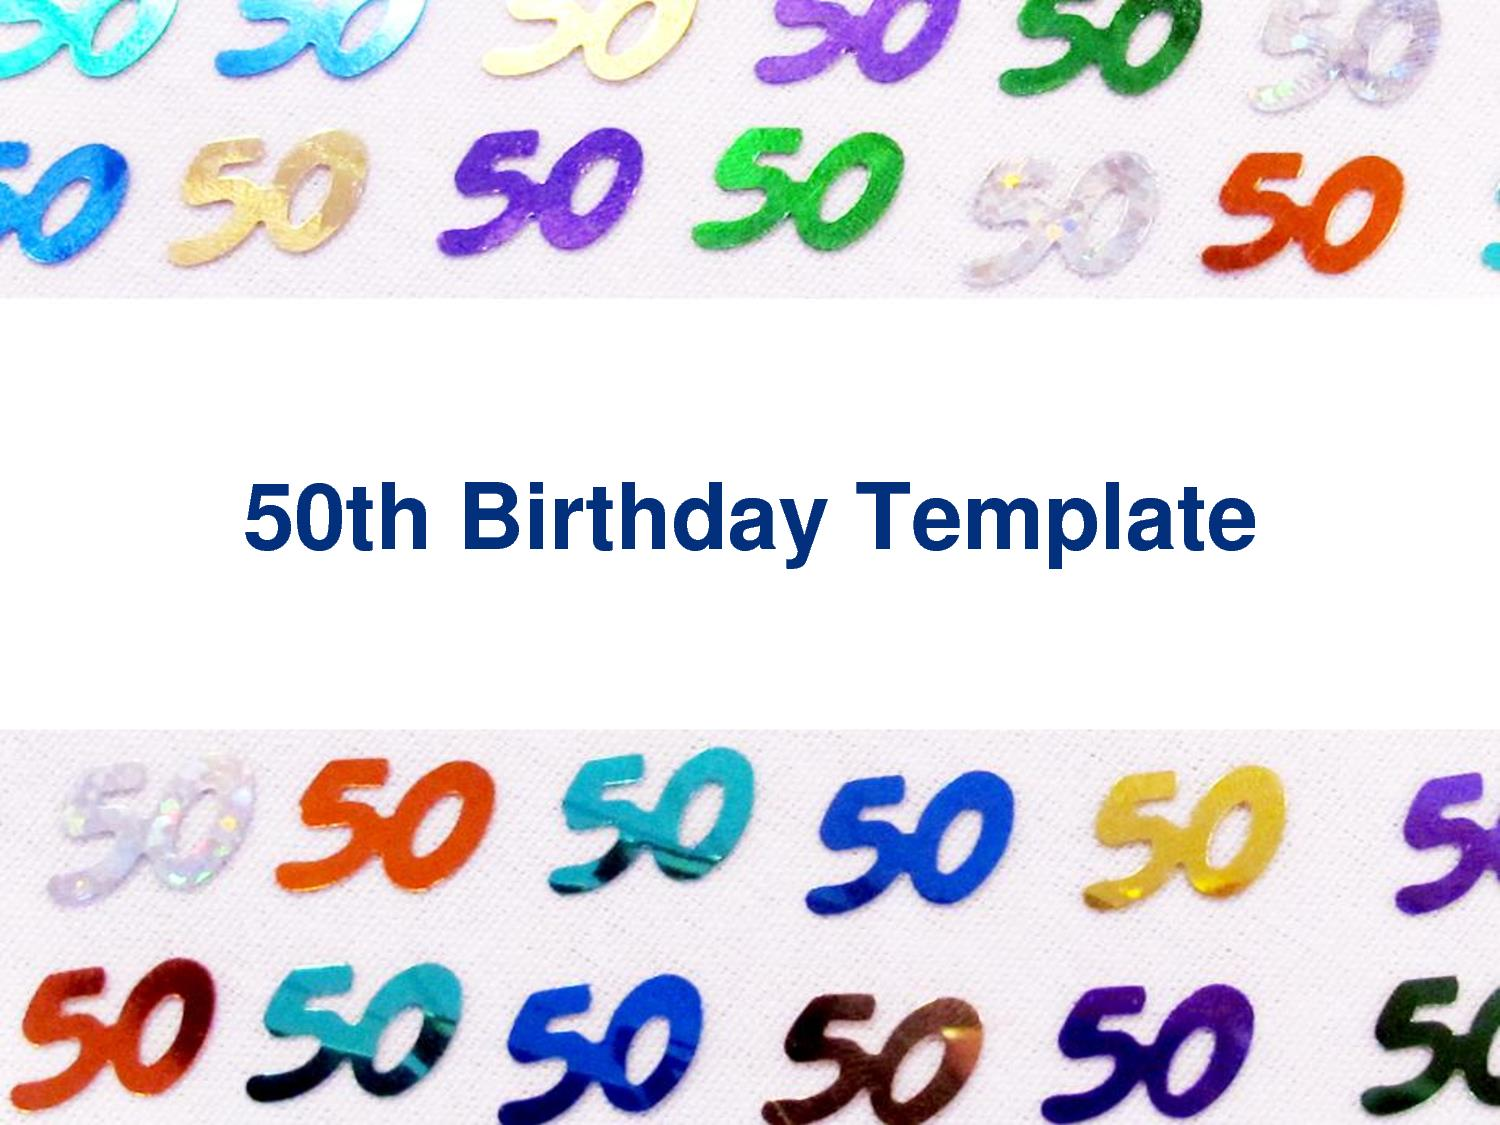 free birthday page borders ; 50th-birthday-party-borders-40th-birthday-ideas-50th-birthday-invitation-templates-word-free-6